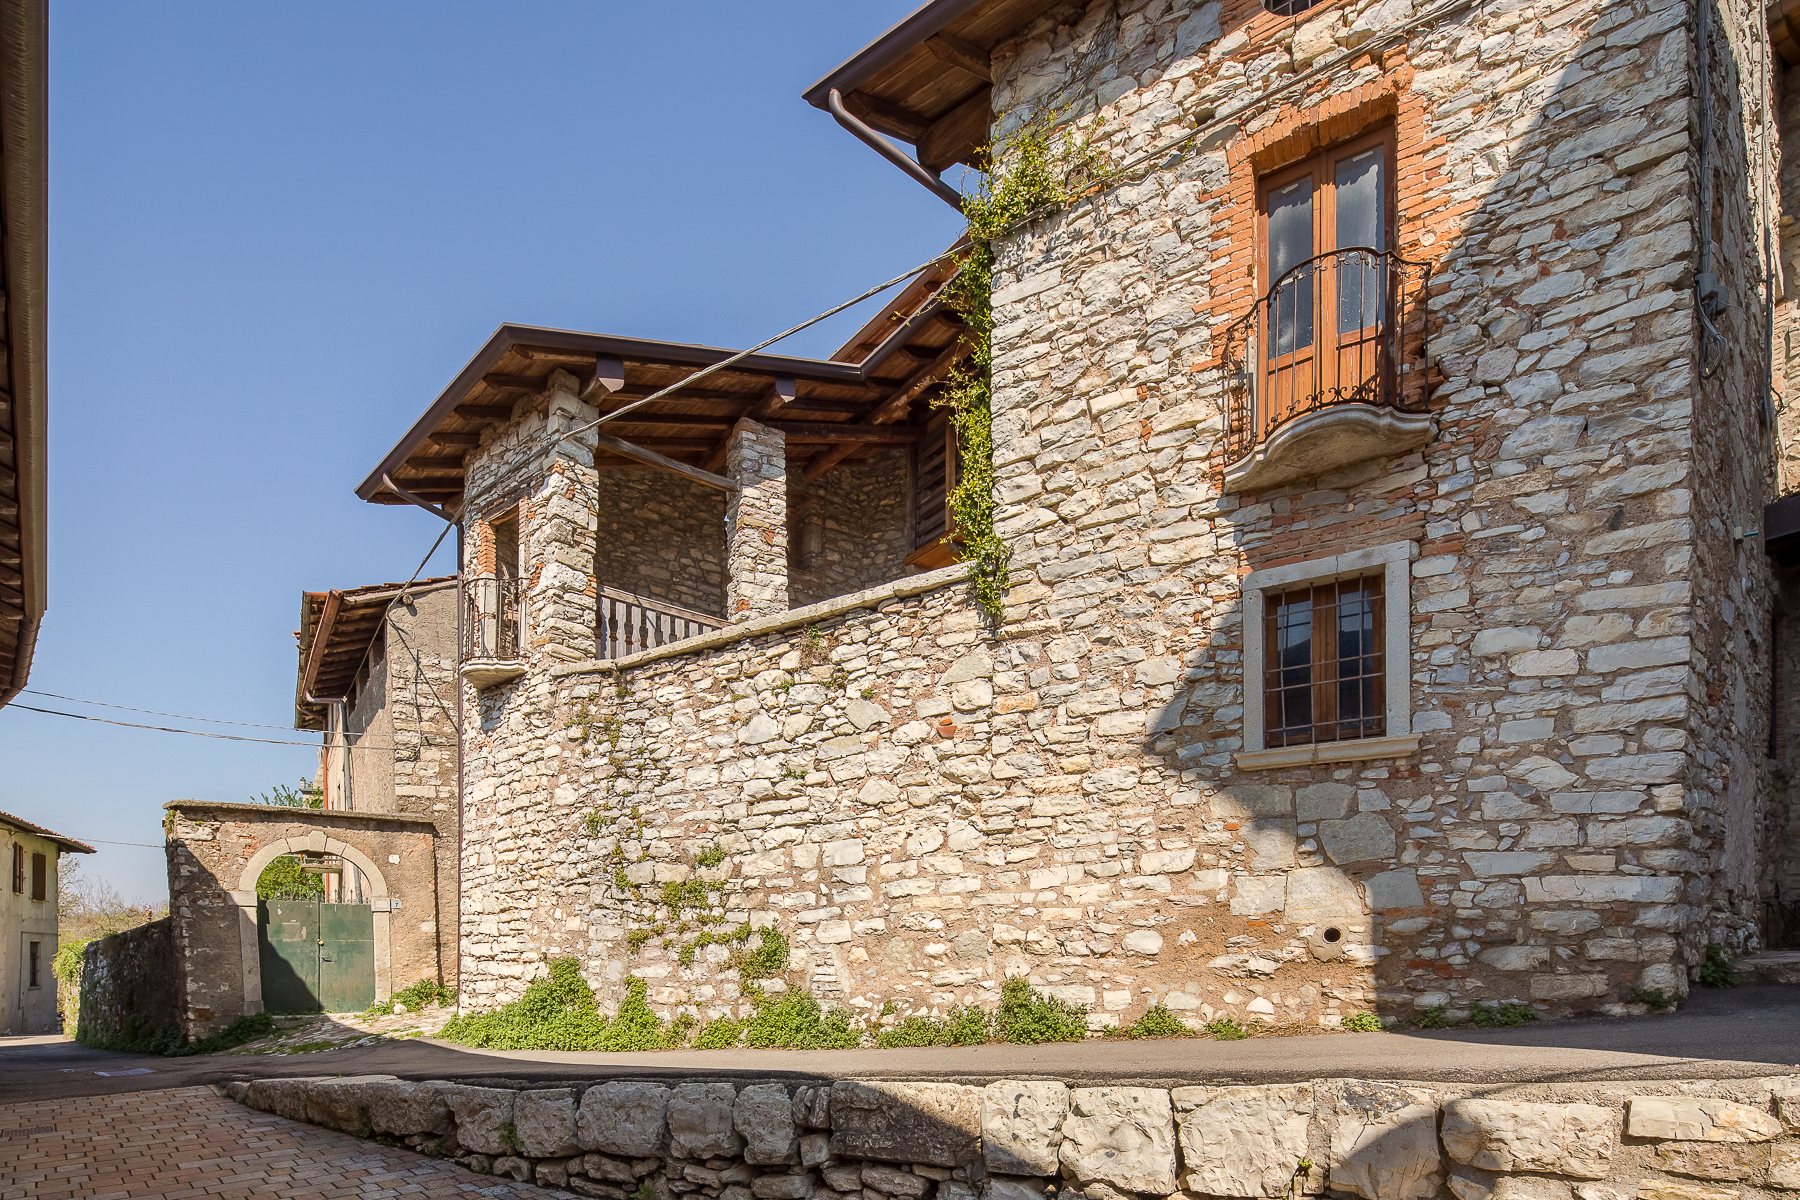 Single Family Homes for Sale at Ancient stone property in a quiet hillside village Other Bergamo, Bergamo Italy